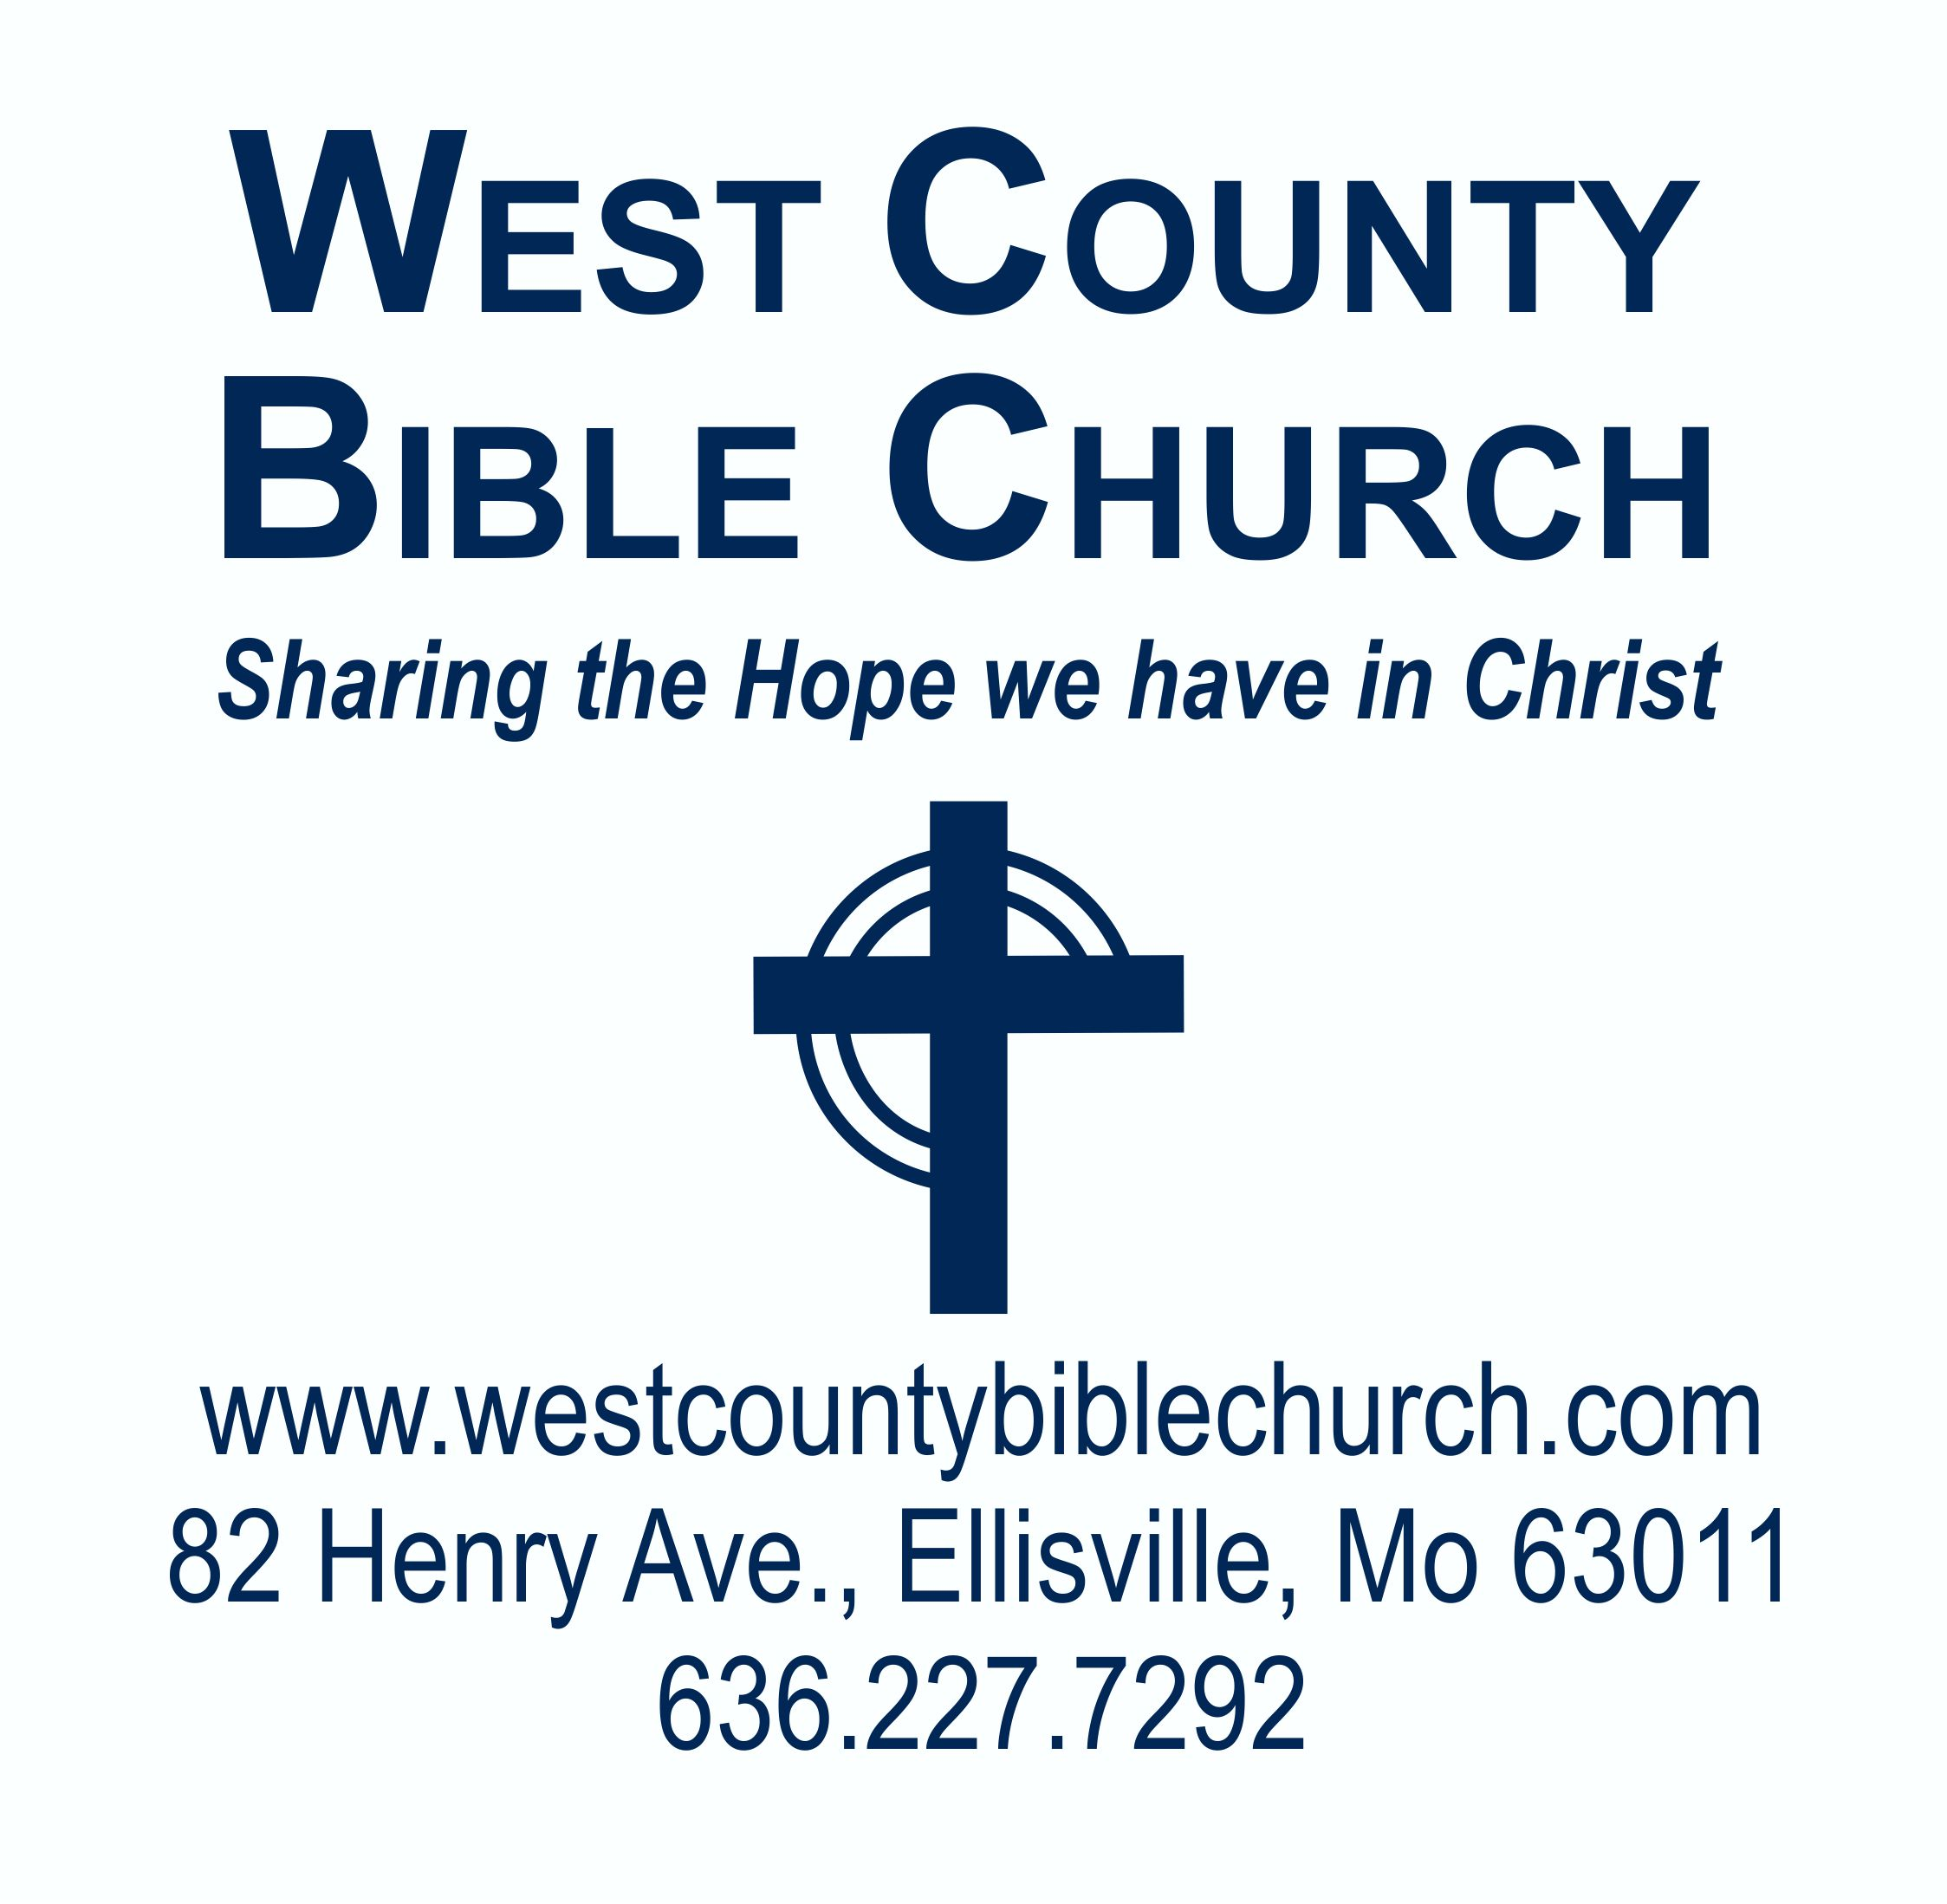 West County Bible Church